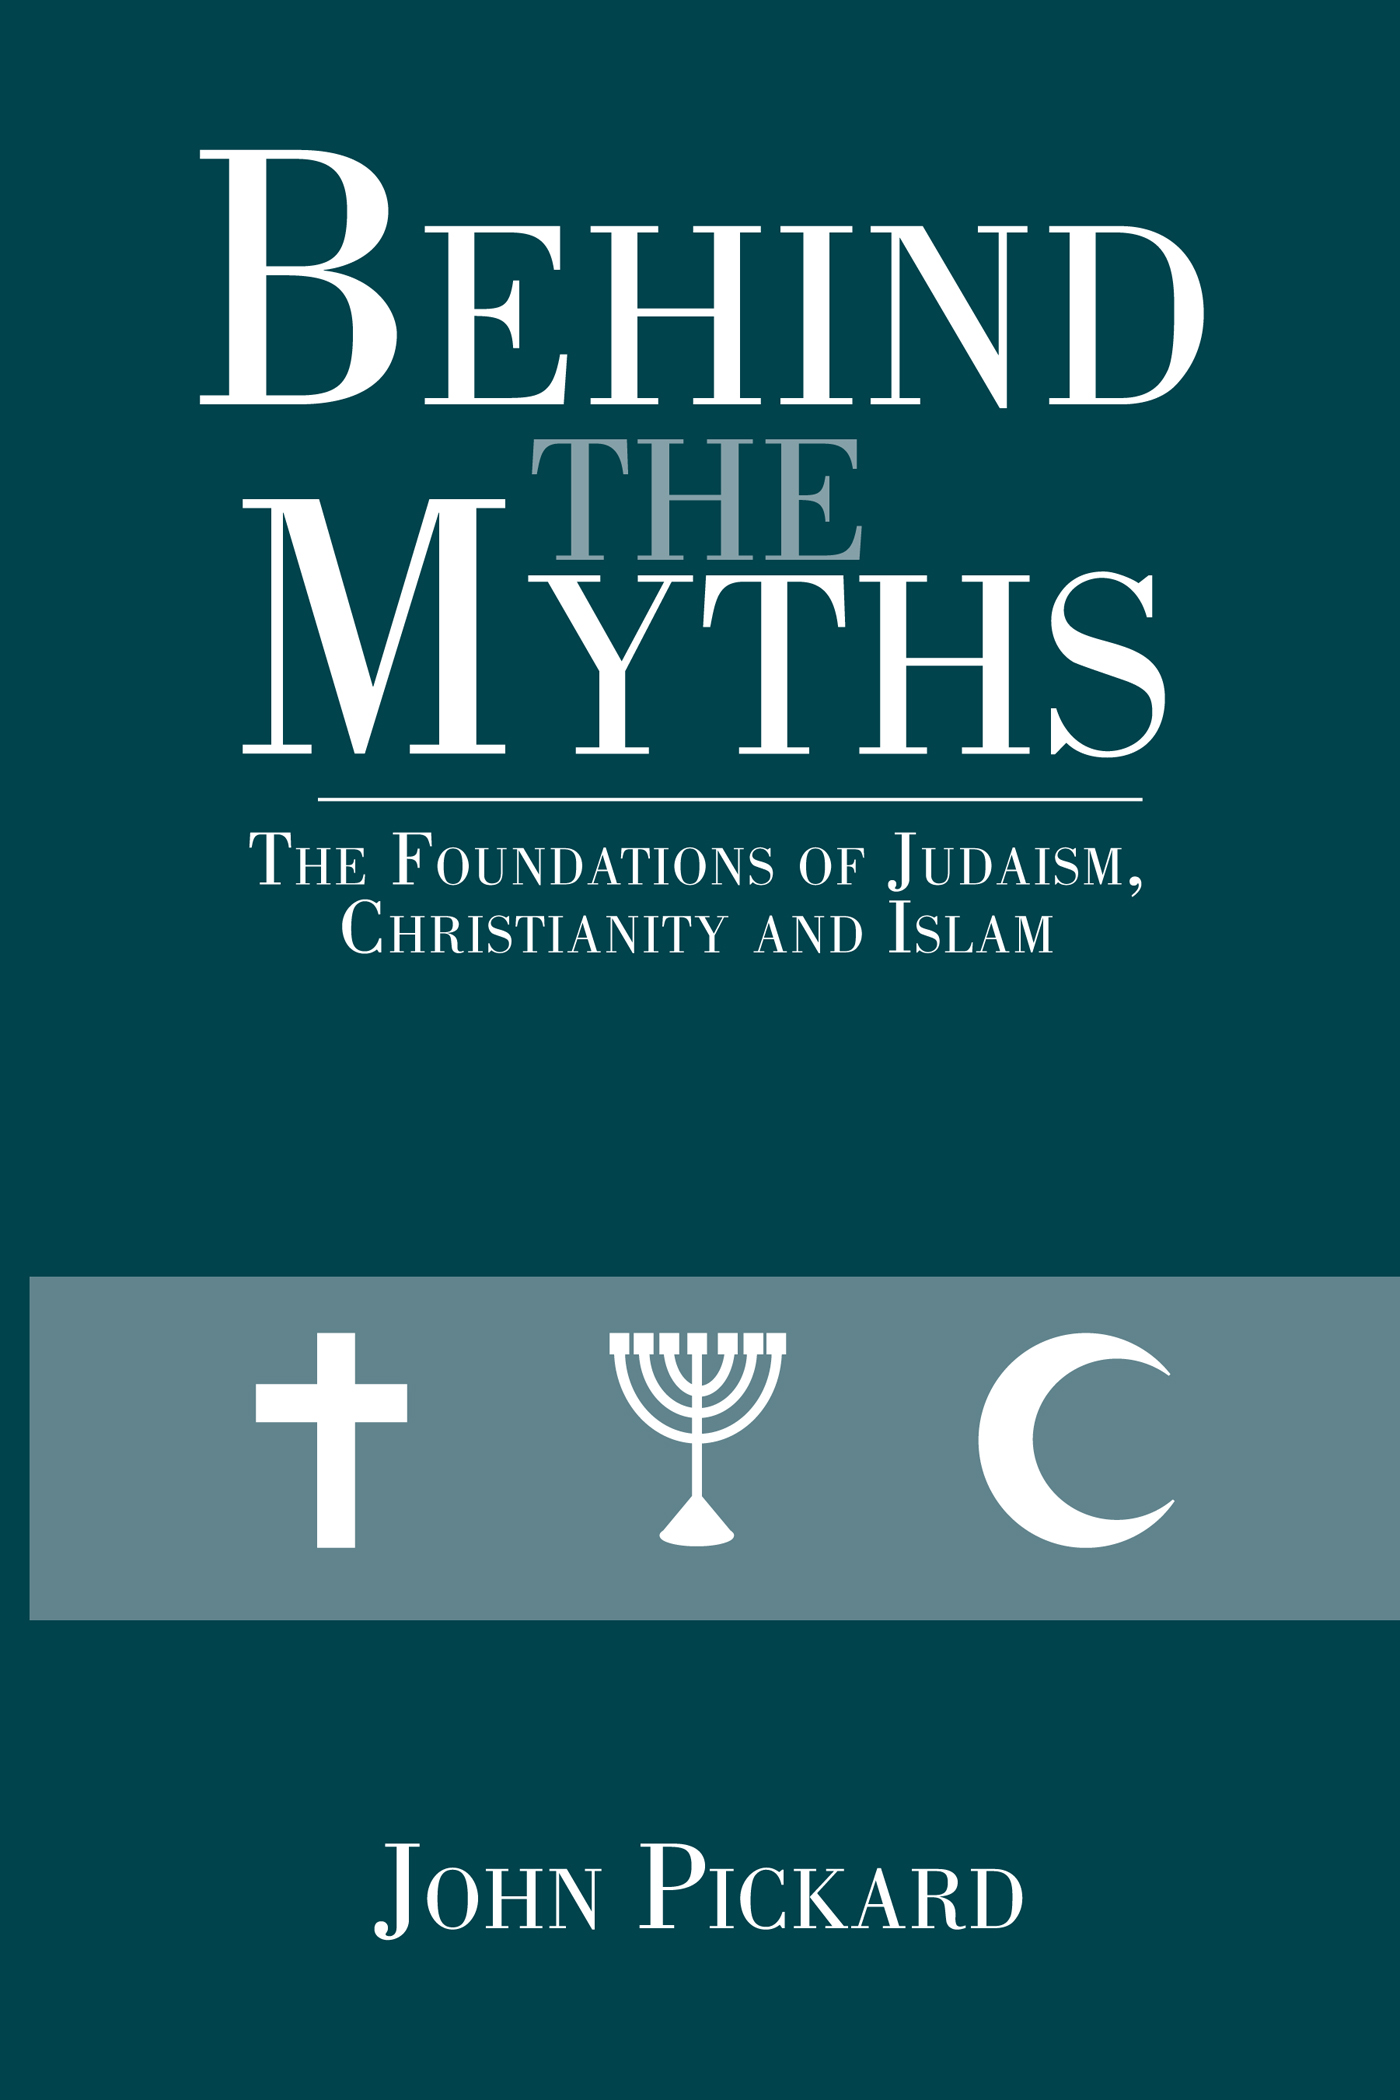 Behind the Myths The Foundations of Judaism, Christianity and Islam